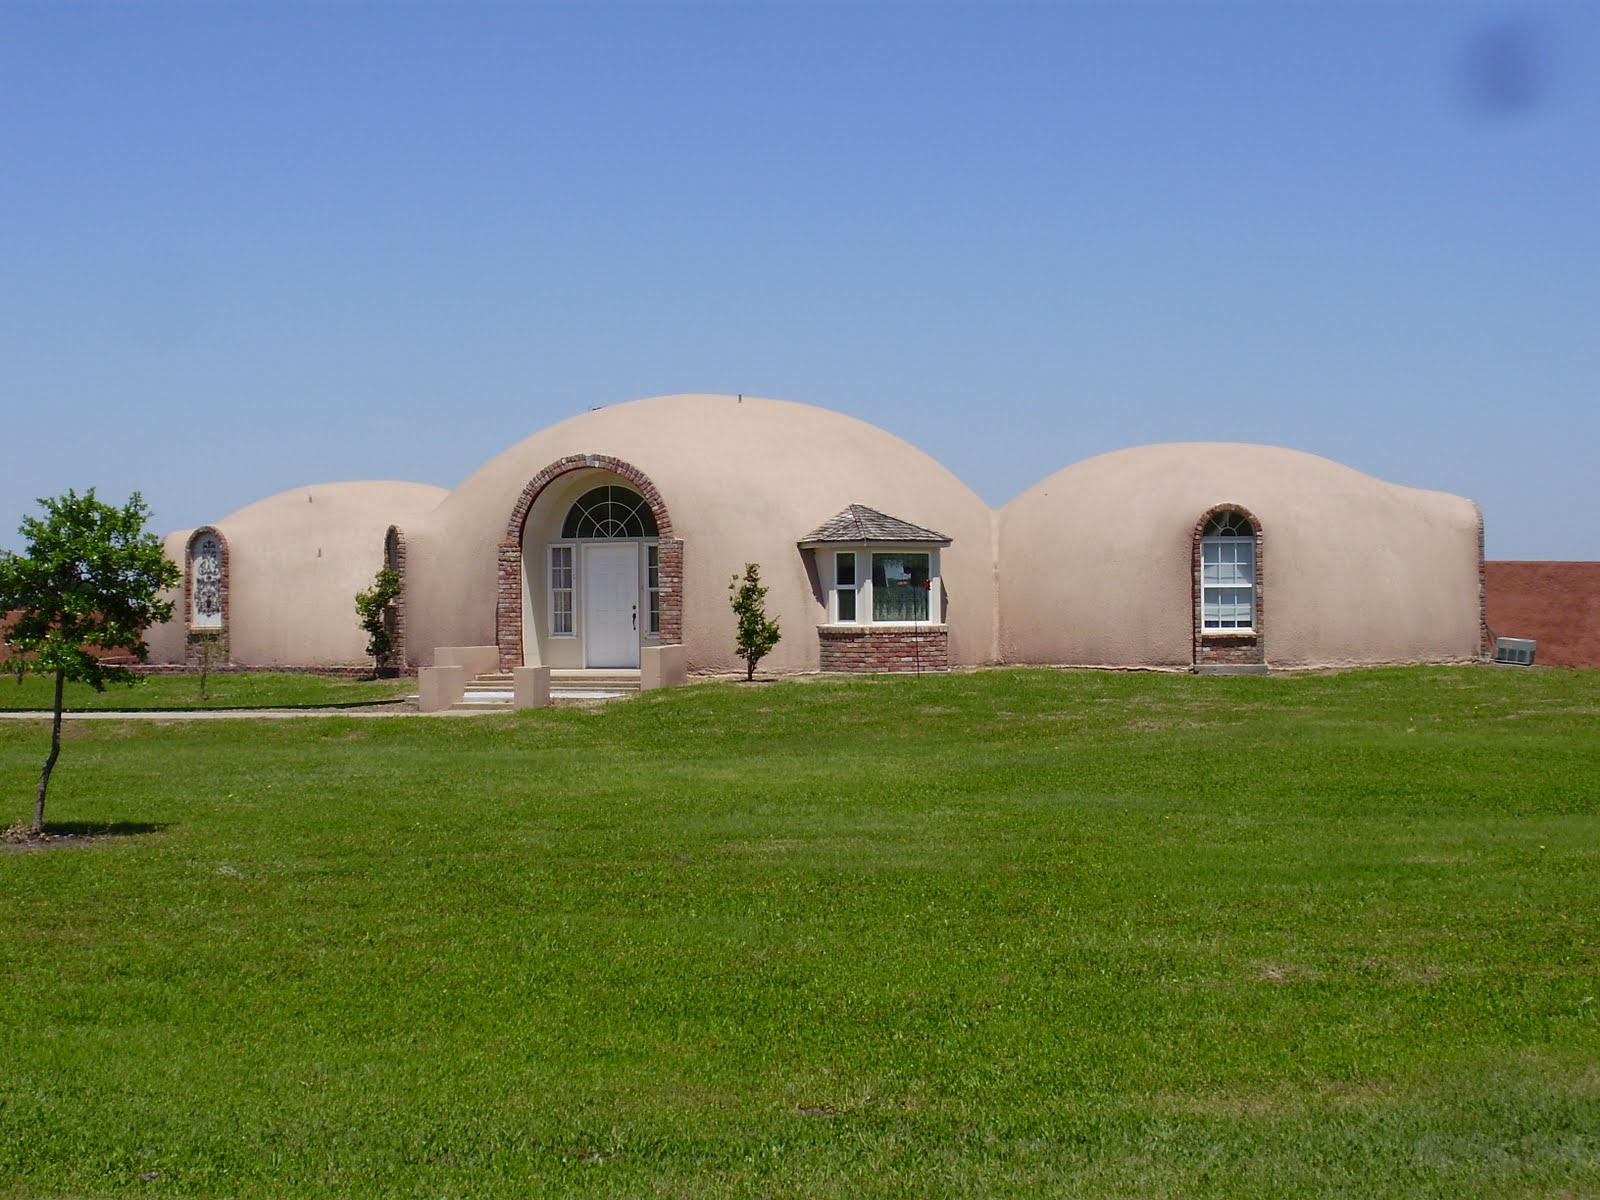 Life at 55 mph: Monolithic Dome Institute in Italy, Texas ...